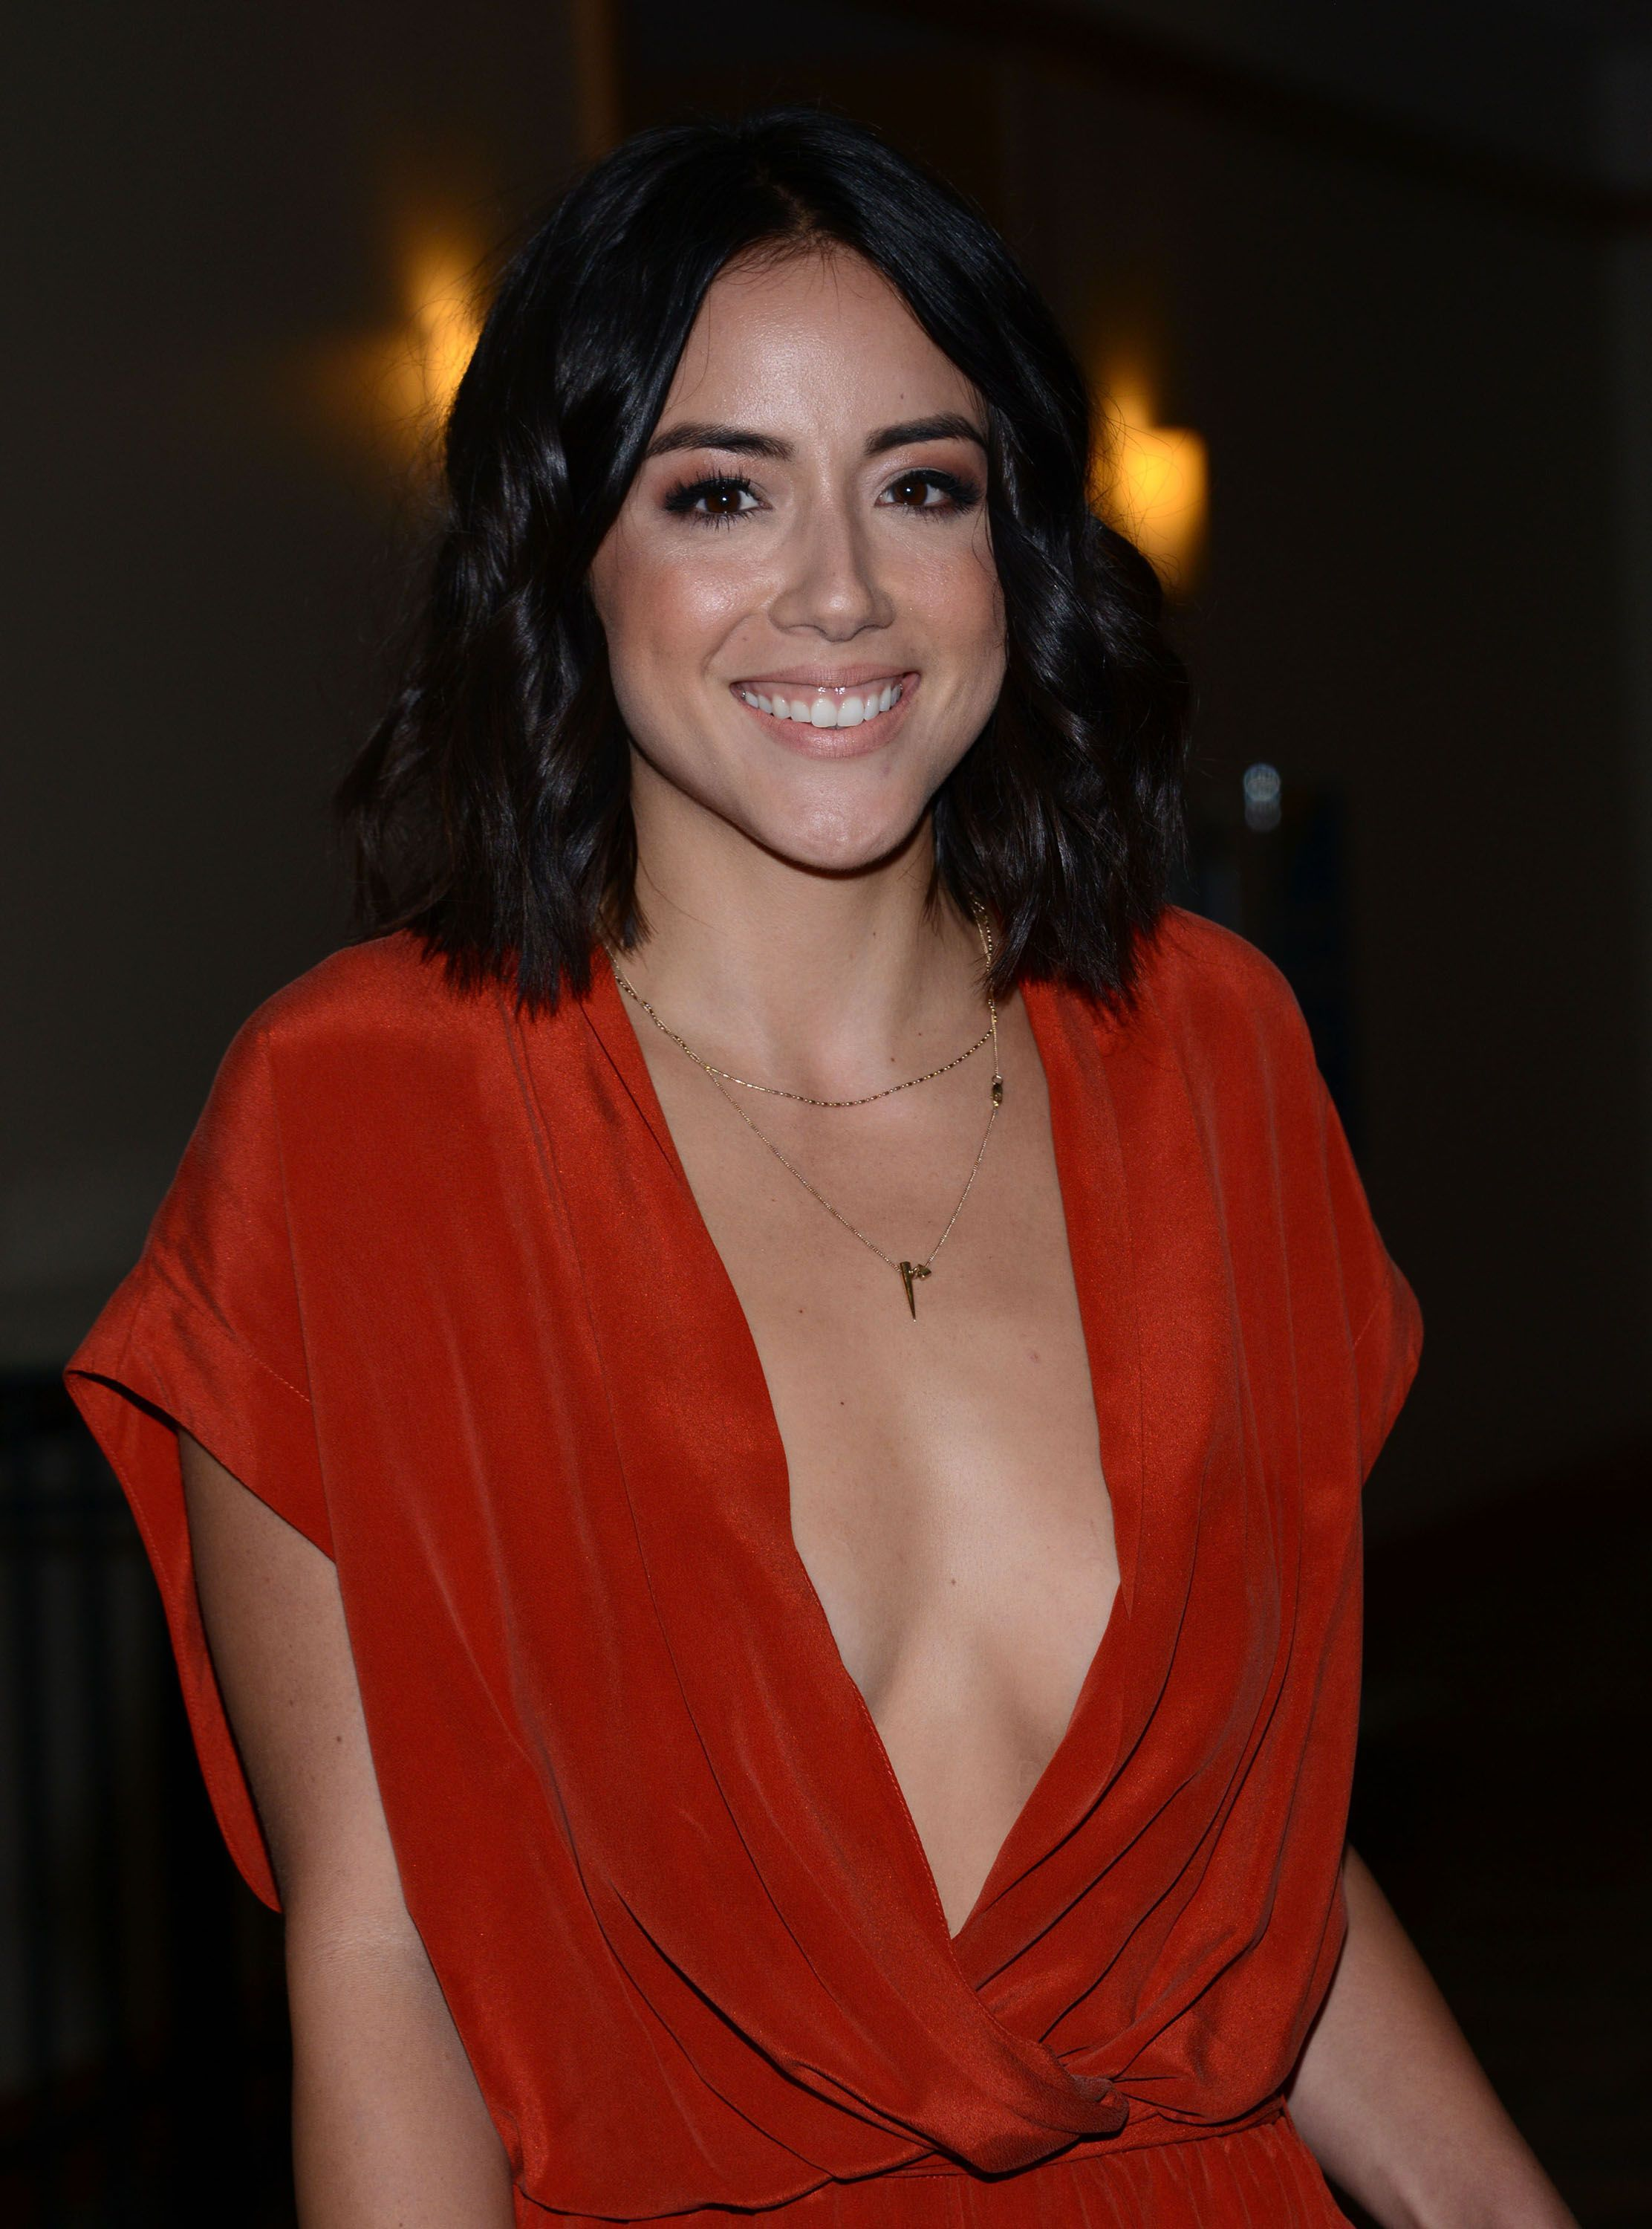 Chloe bennet cleavage naked (61 photo), Instagram Celebrites pic